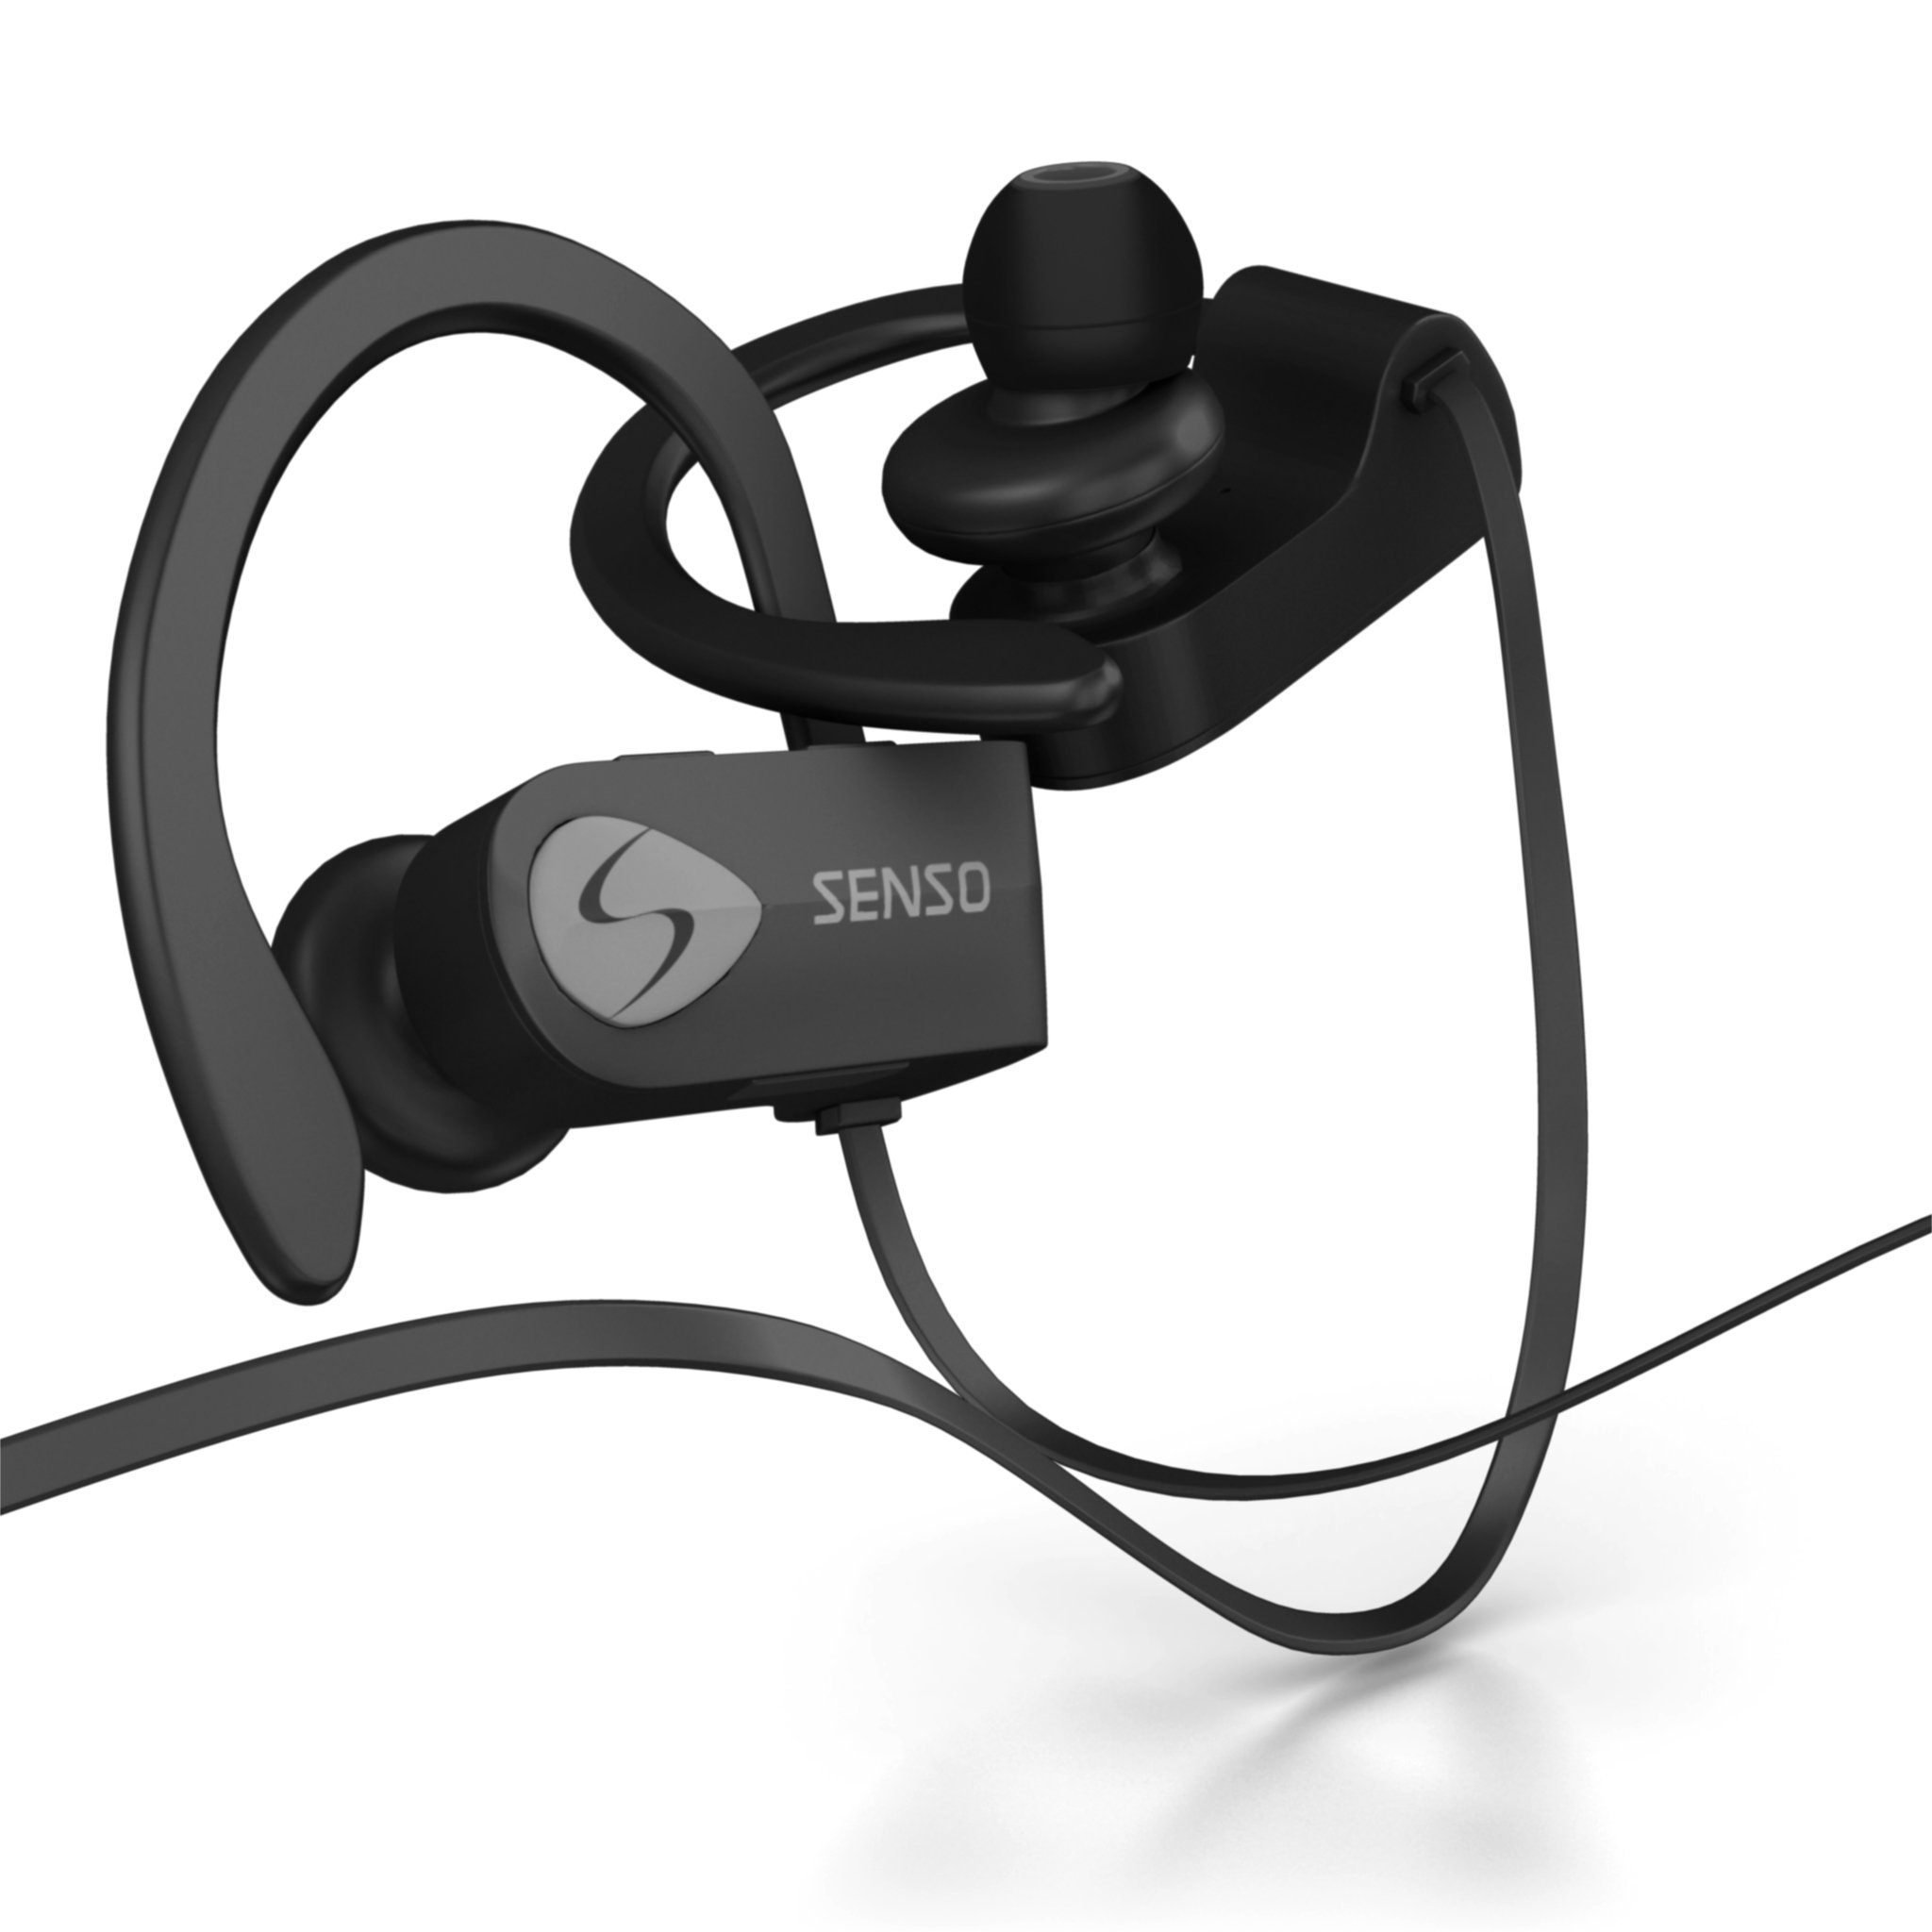 SENSO Bluetooth Headphones, Best Wireless Sports Earphones w/Mic IPX7 Waterproof HD Stereo Sweatproof Earbuds for Gym Running Workout 8 Hour Battery Noise Cancelling Headsets (Grey) by Senso (Image #8)